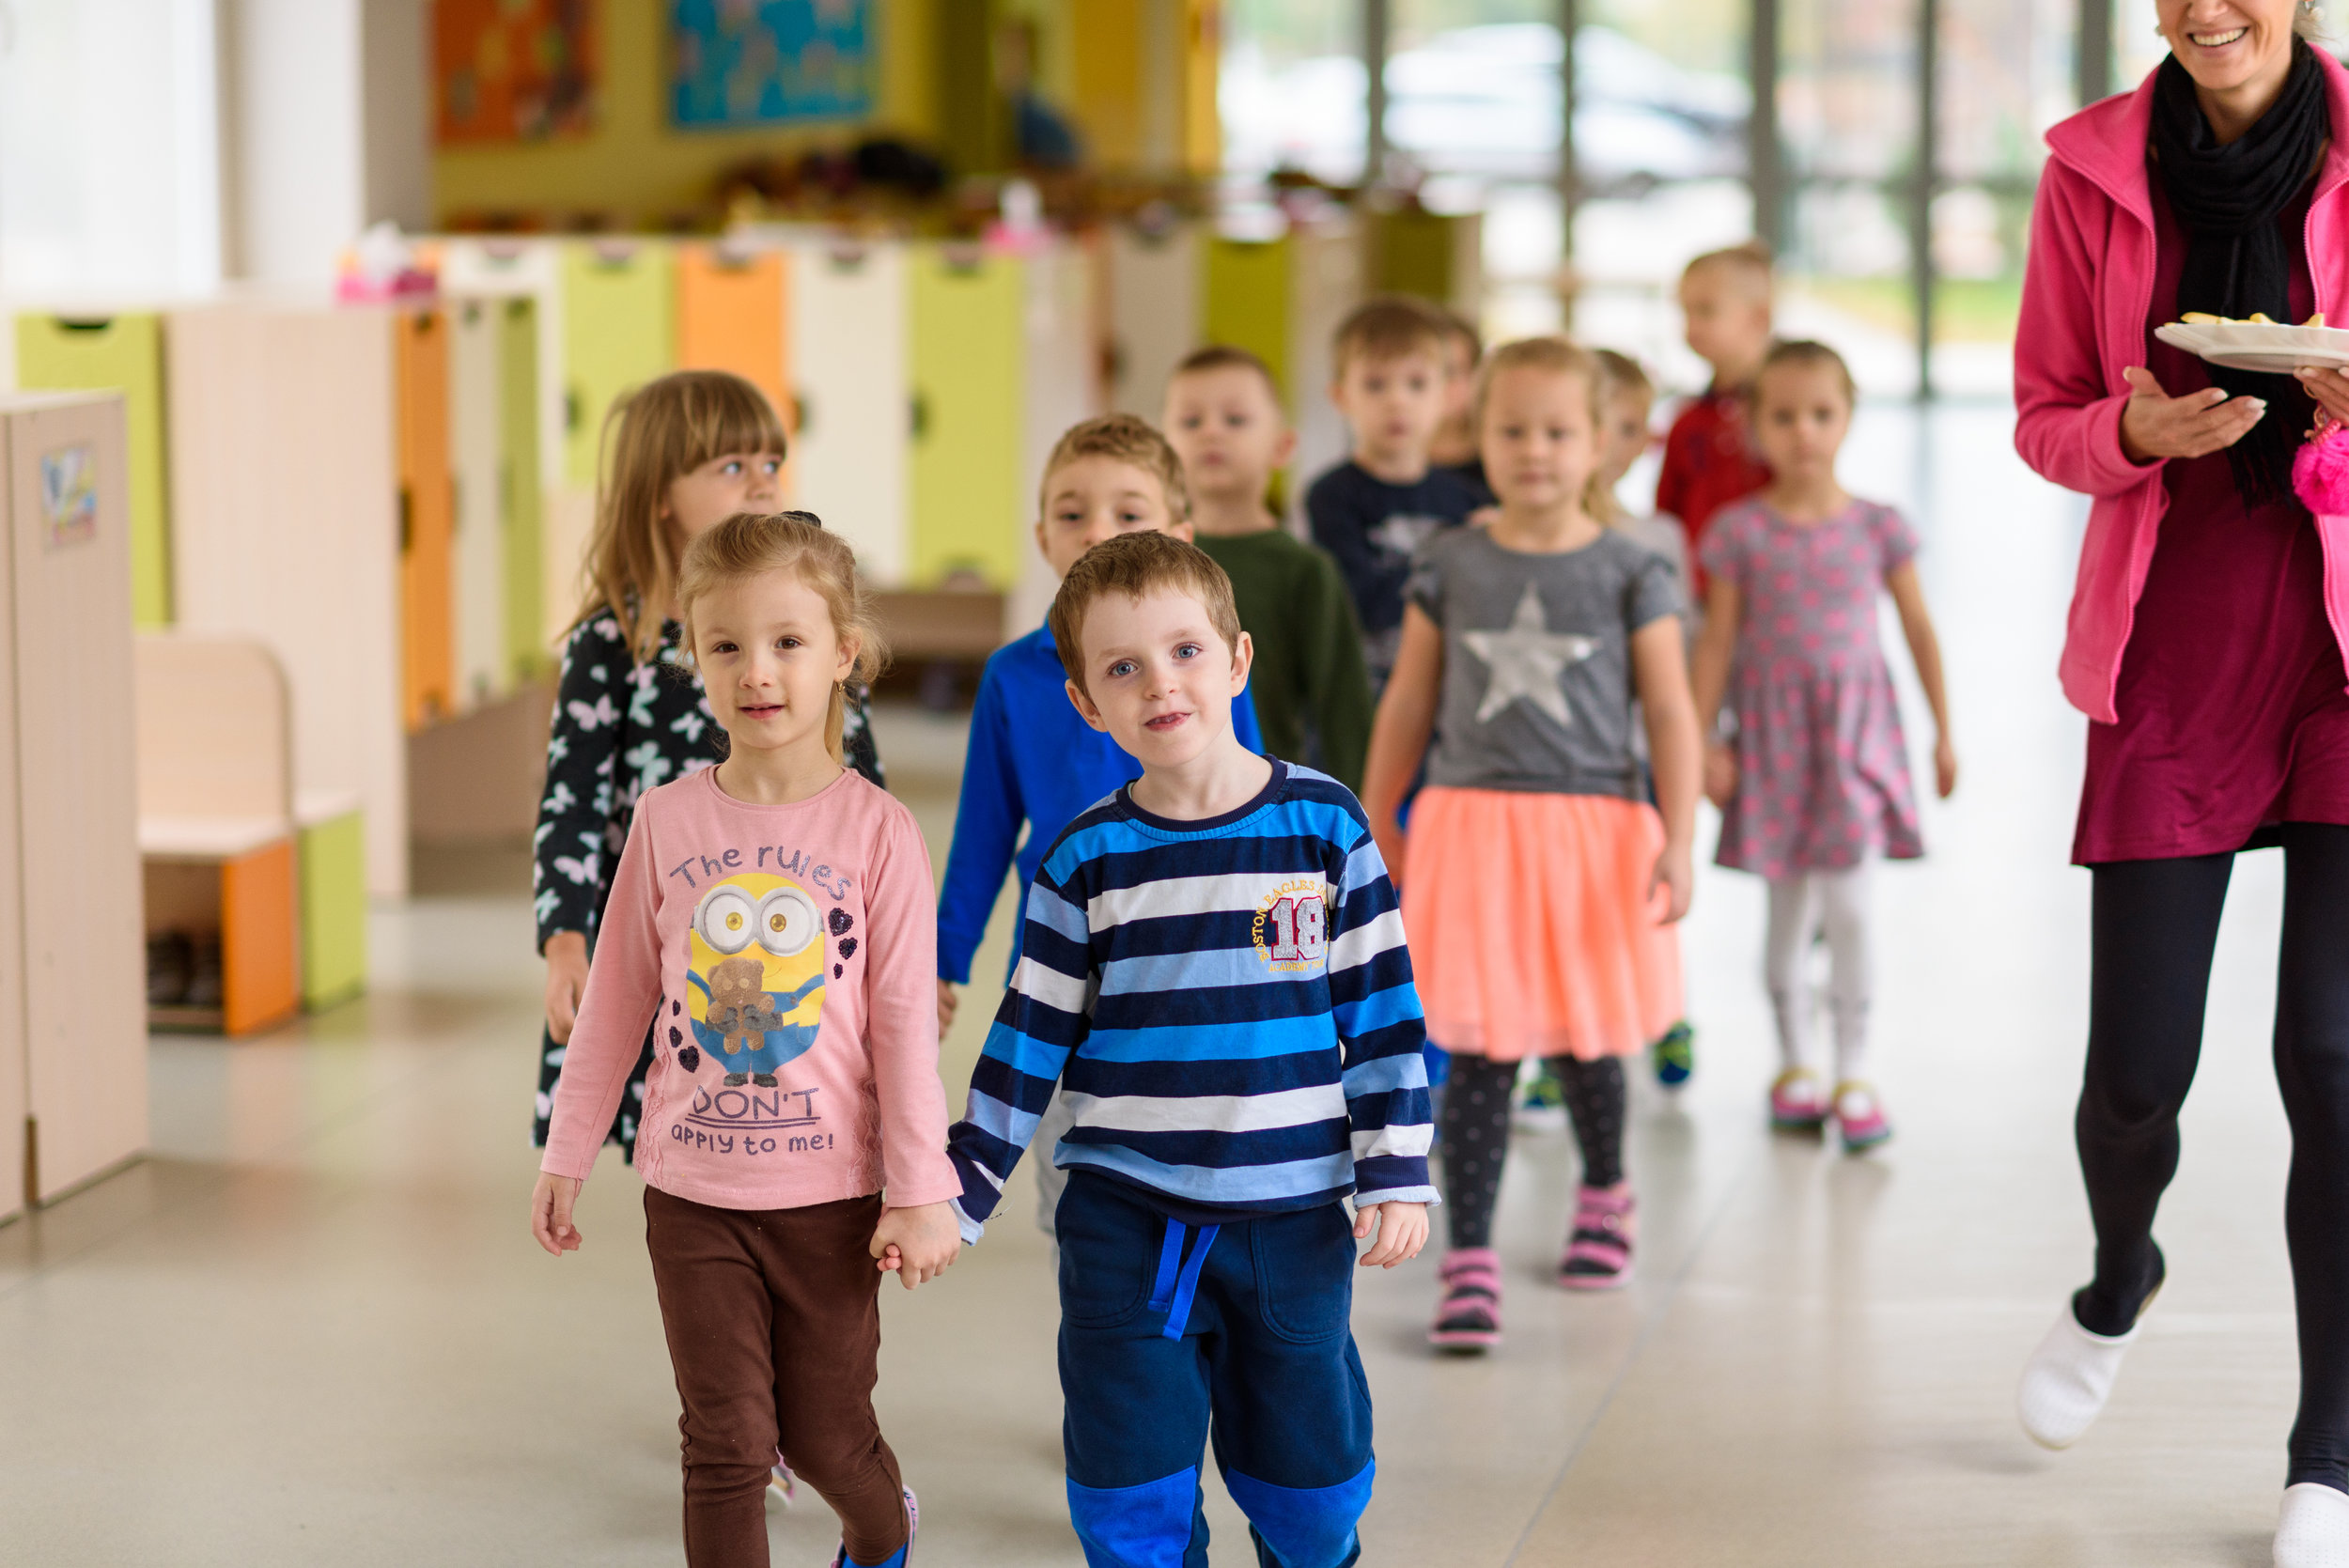 16 children per class - We place children into classrooms so as to allow individual work, peace at work and of course child safety in any and all activities.